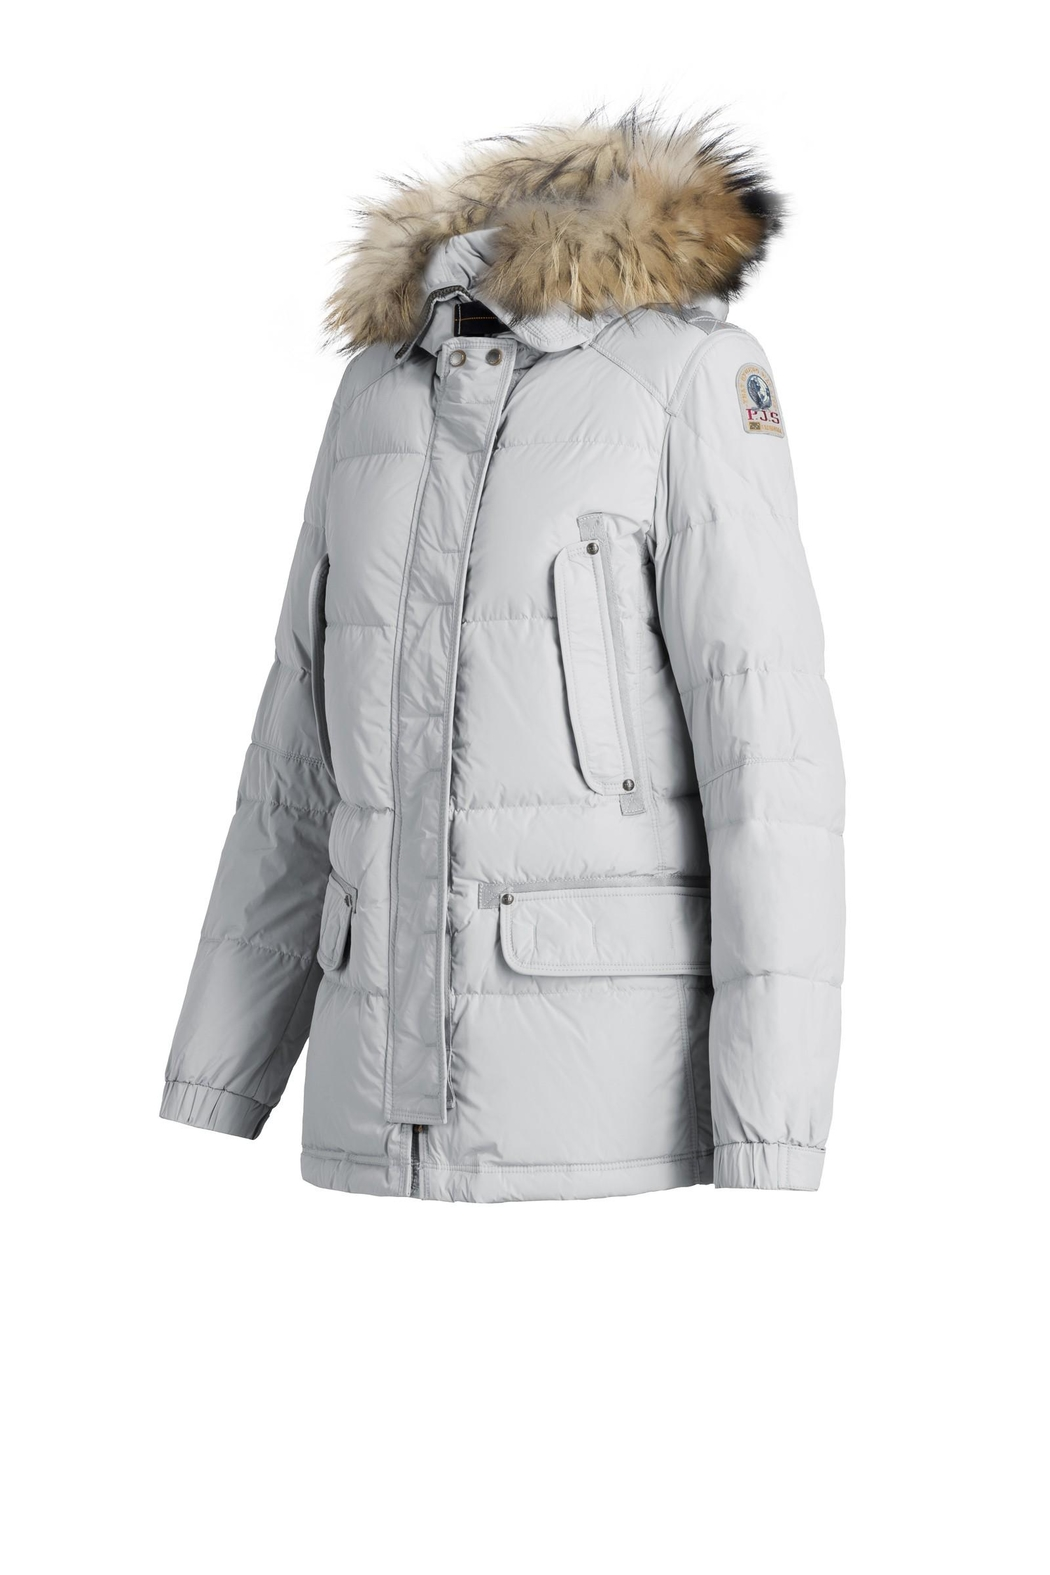 parajumpers parka heather